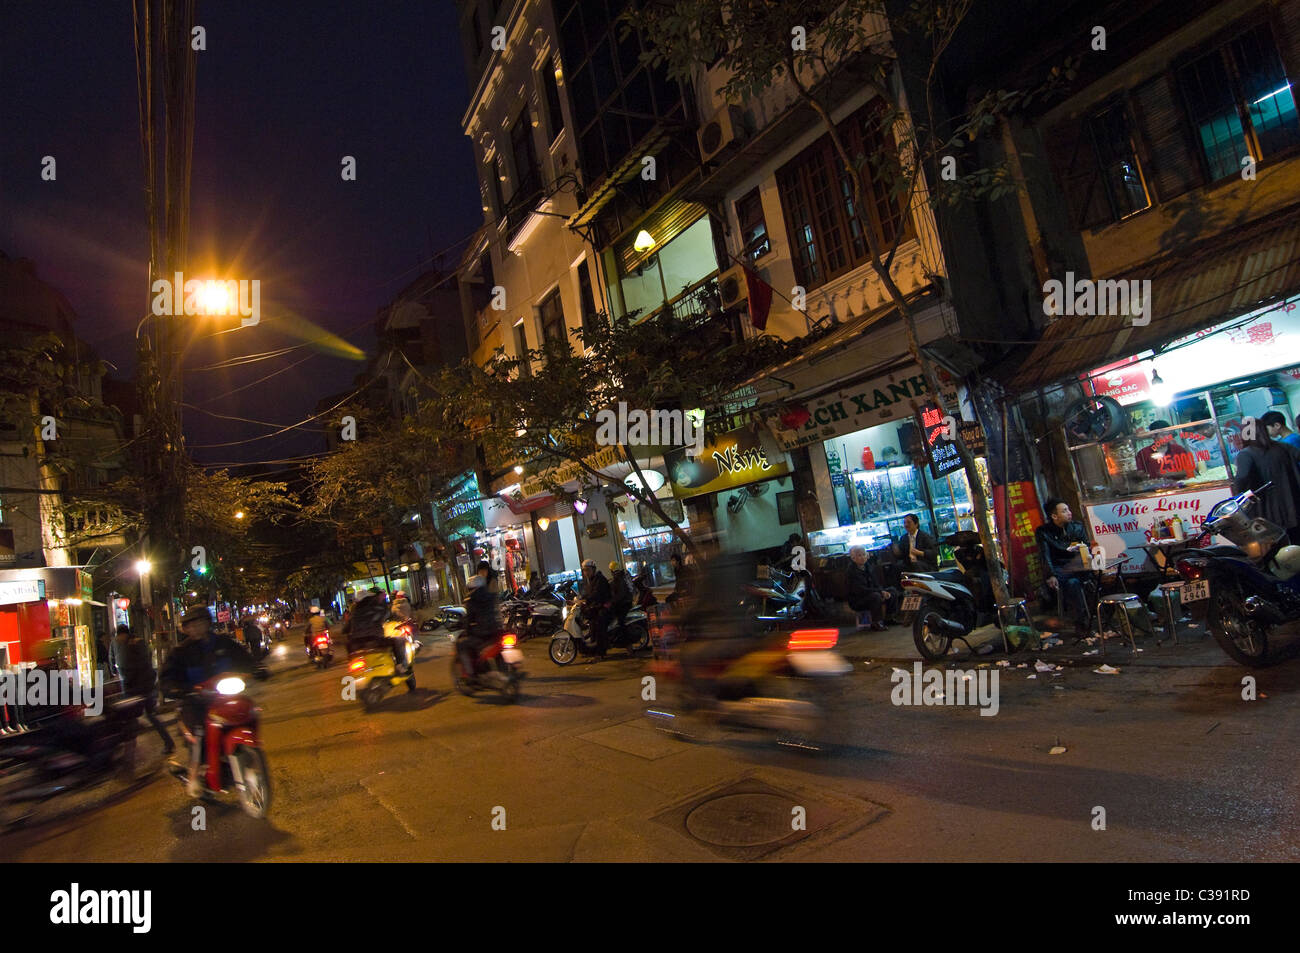 Horizontal night view of a typical streetscene of the Old Quarter in Hanoi, with shops open for business and mopeds - Stock Image